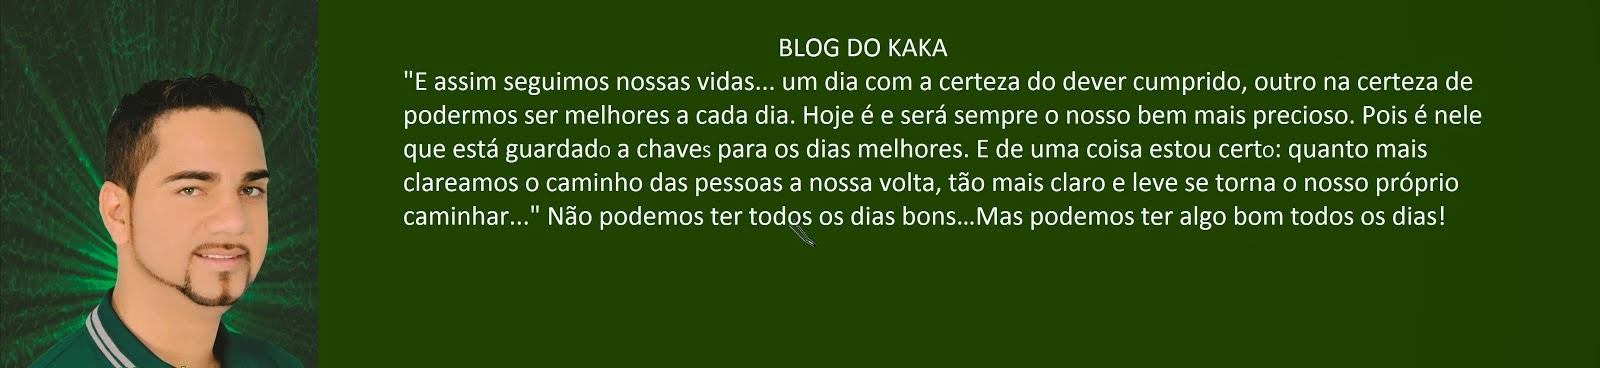 BLOG DO KAIO SERGIO